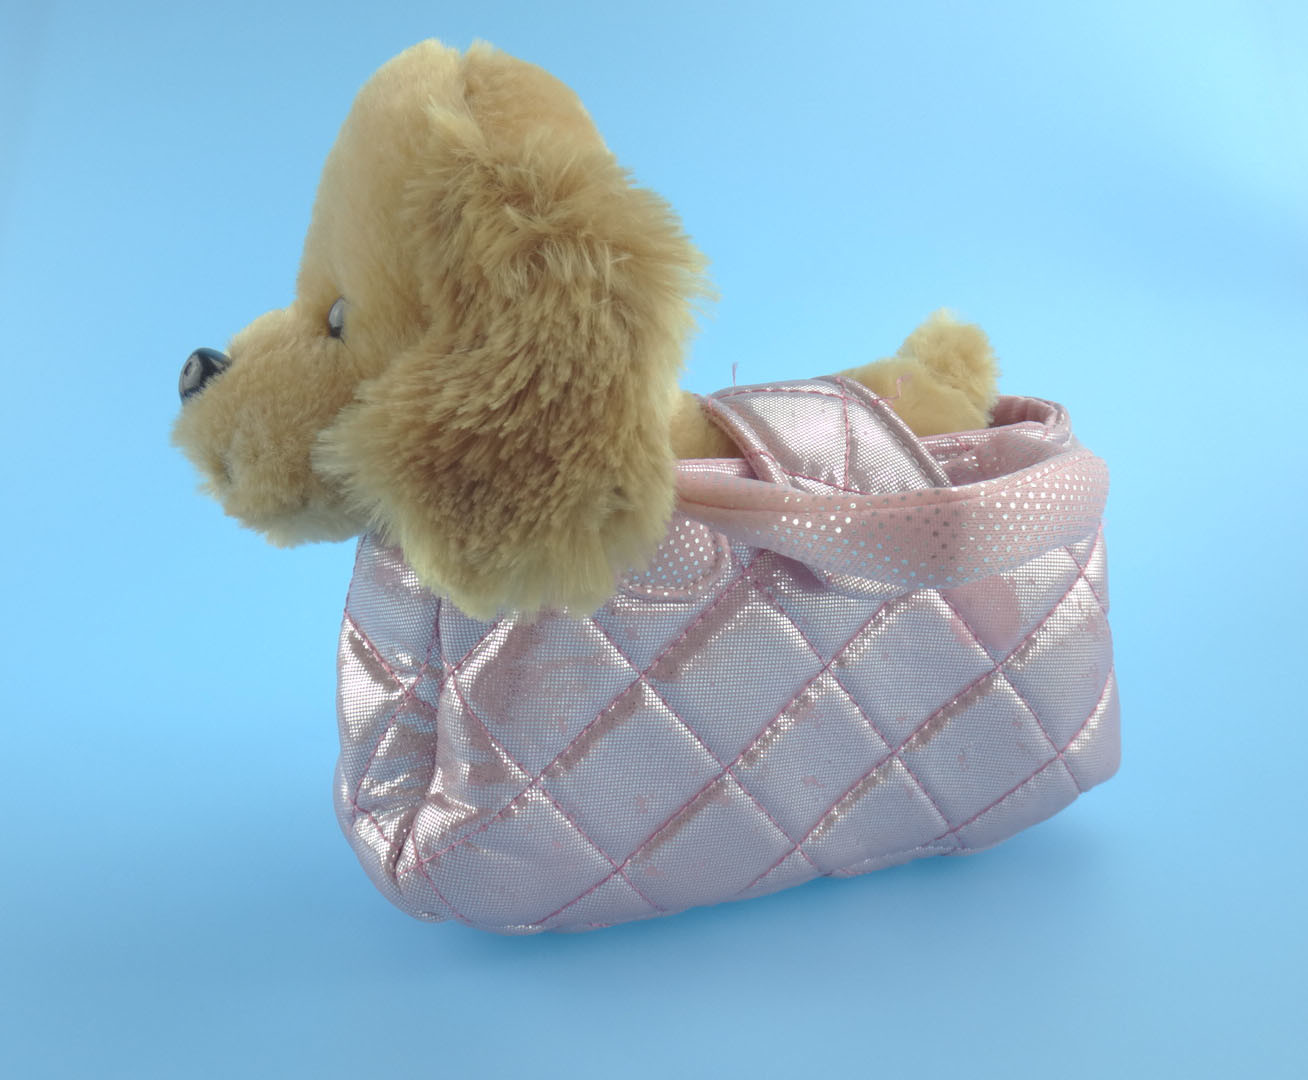 Cute Plush Dog with Portable Dog Bag Plush Toy